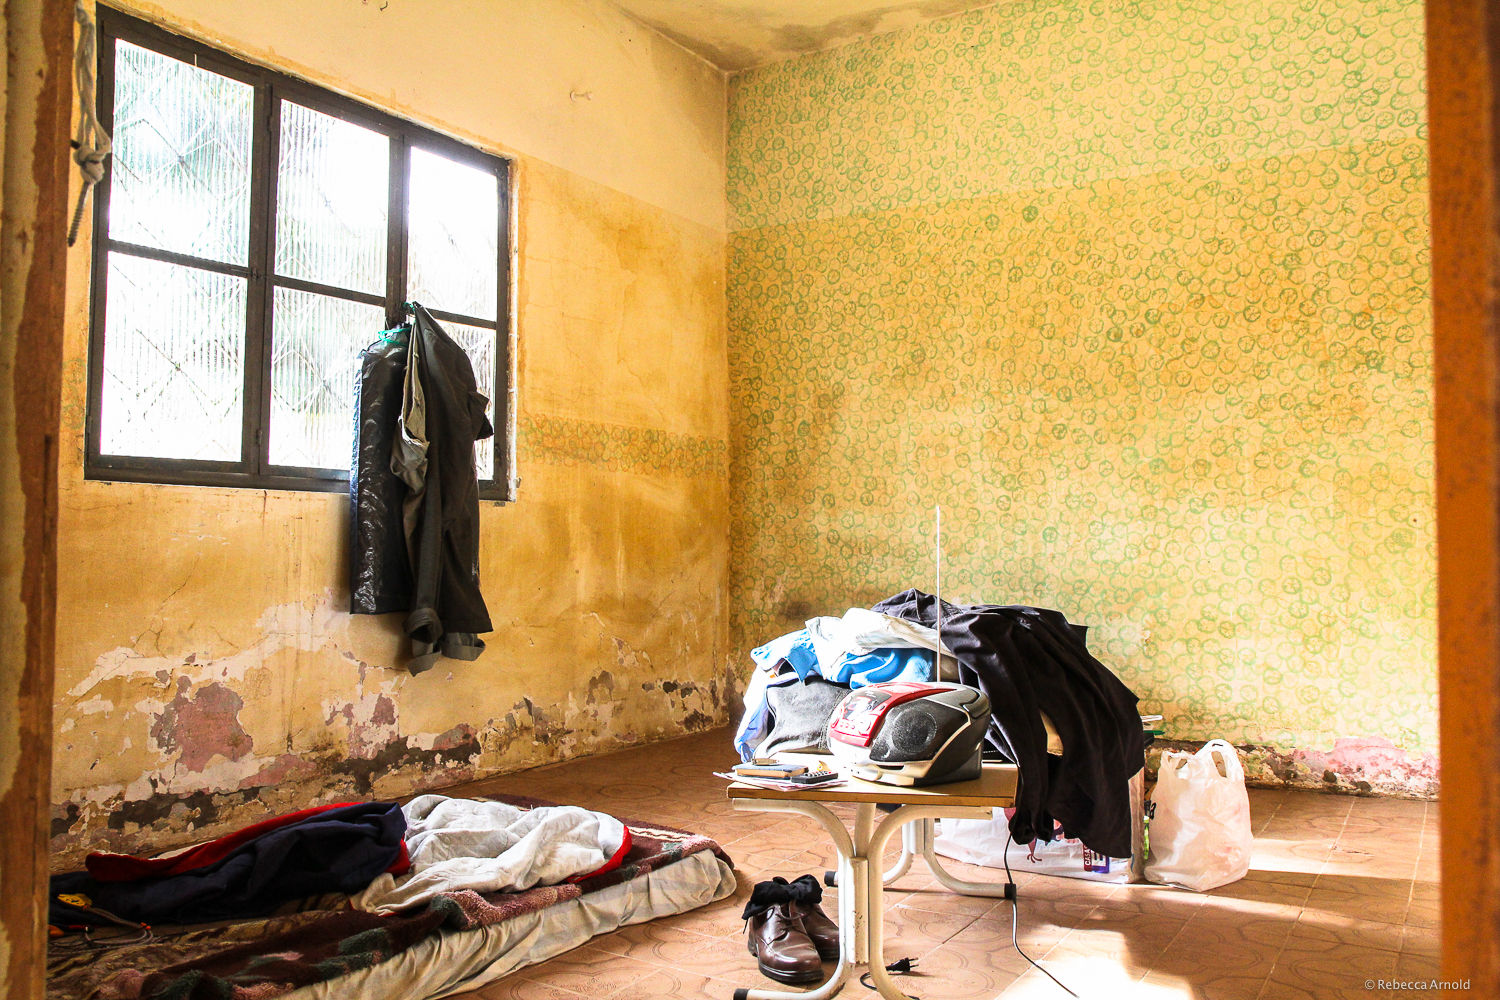 His bedroom, four months after the flood. Note the waterline on the walls.